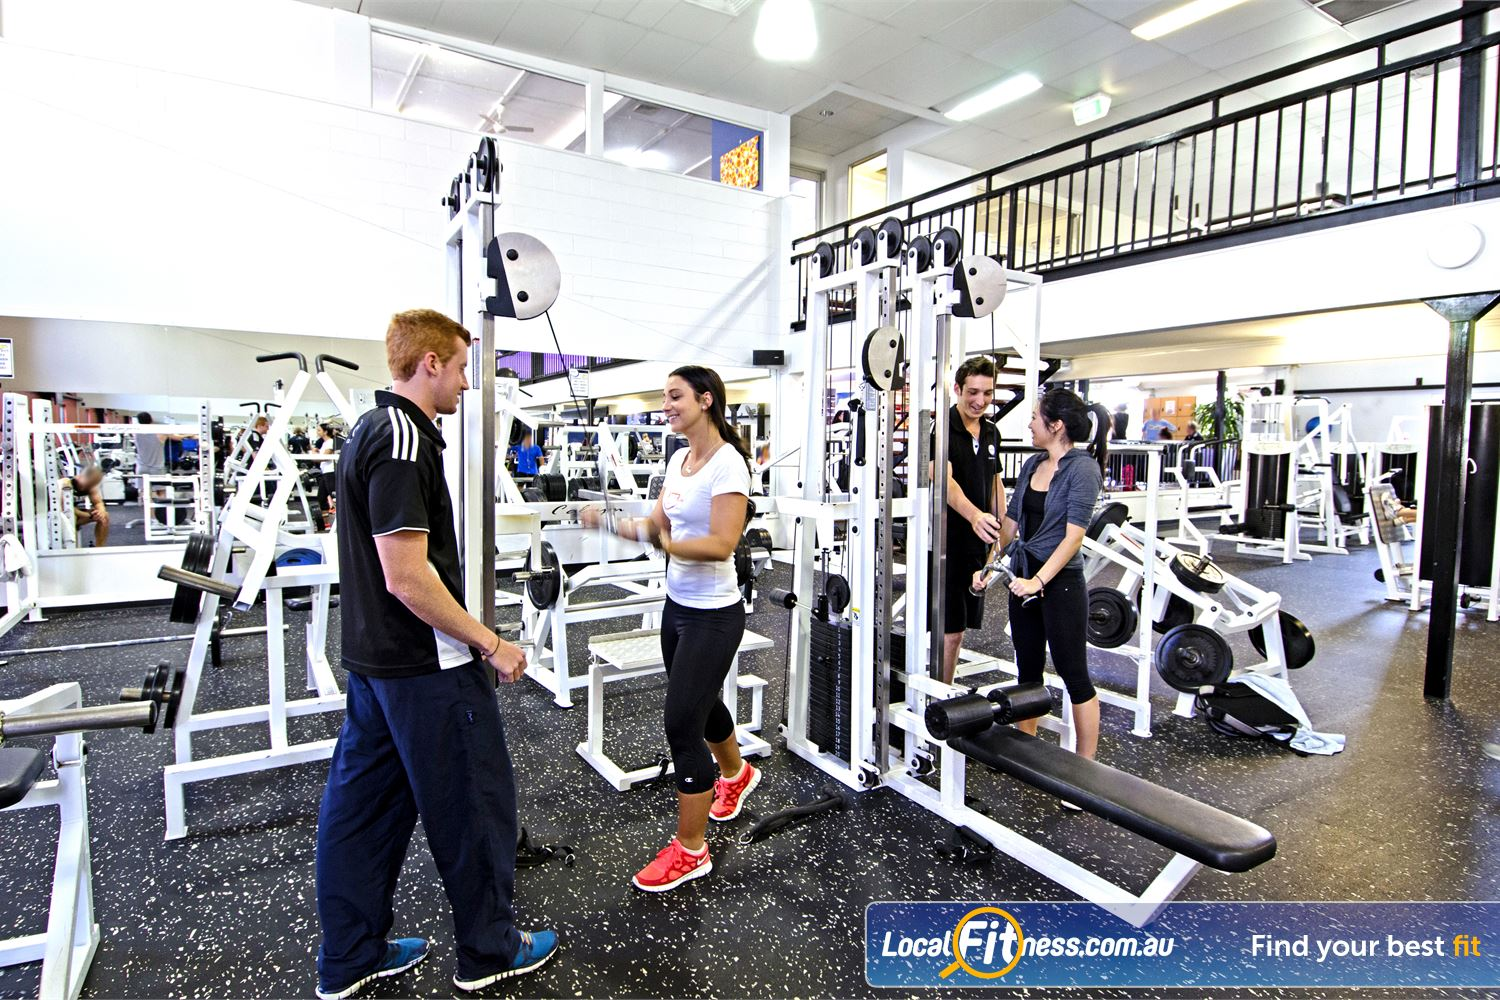 Goodlife Health Clubs Graceville Our Goodlife Graceville team can help design a training programme tailored to your needs.